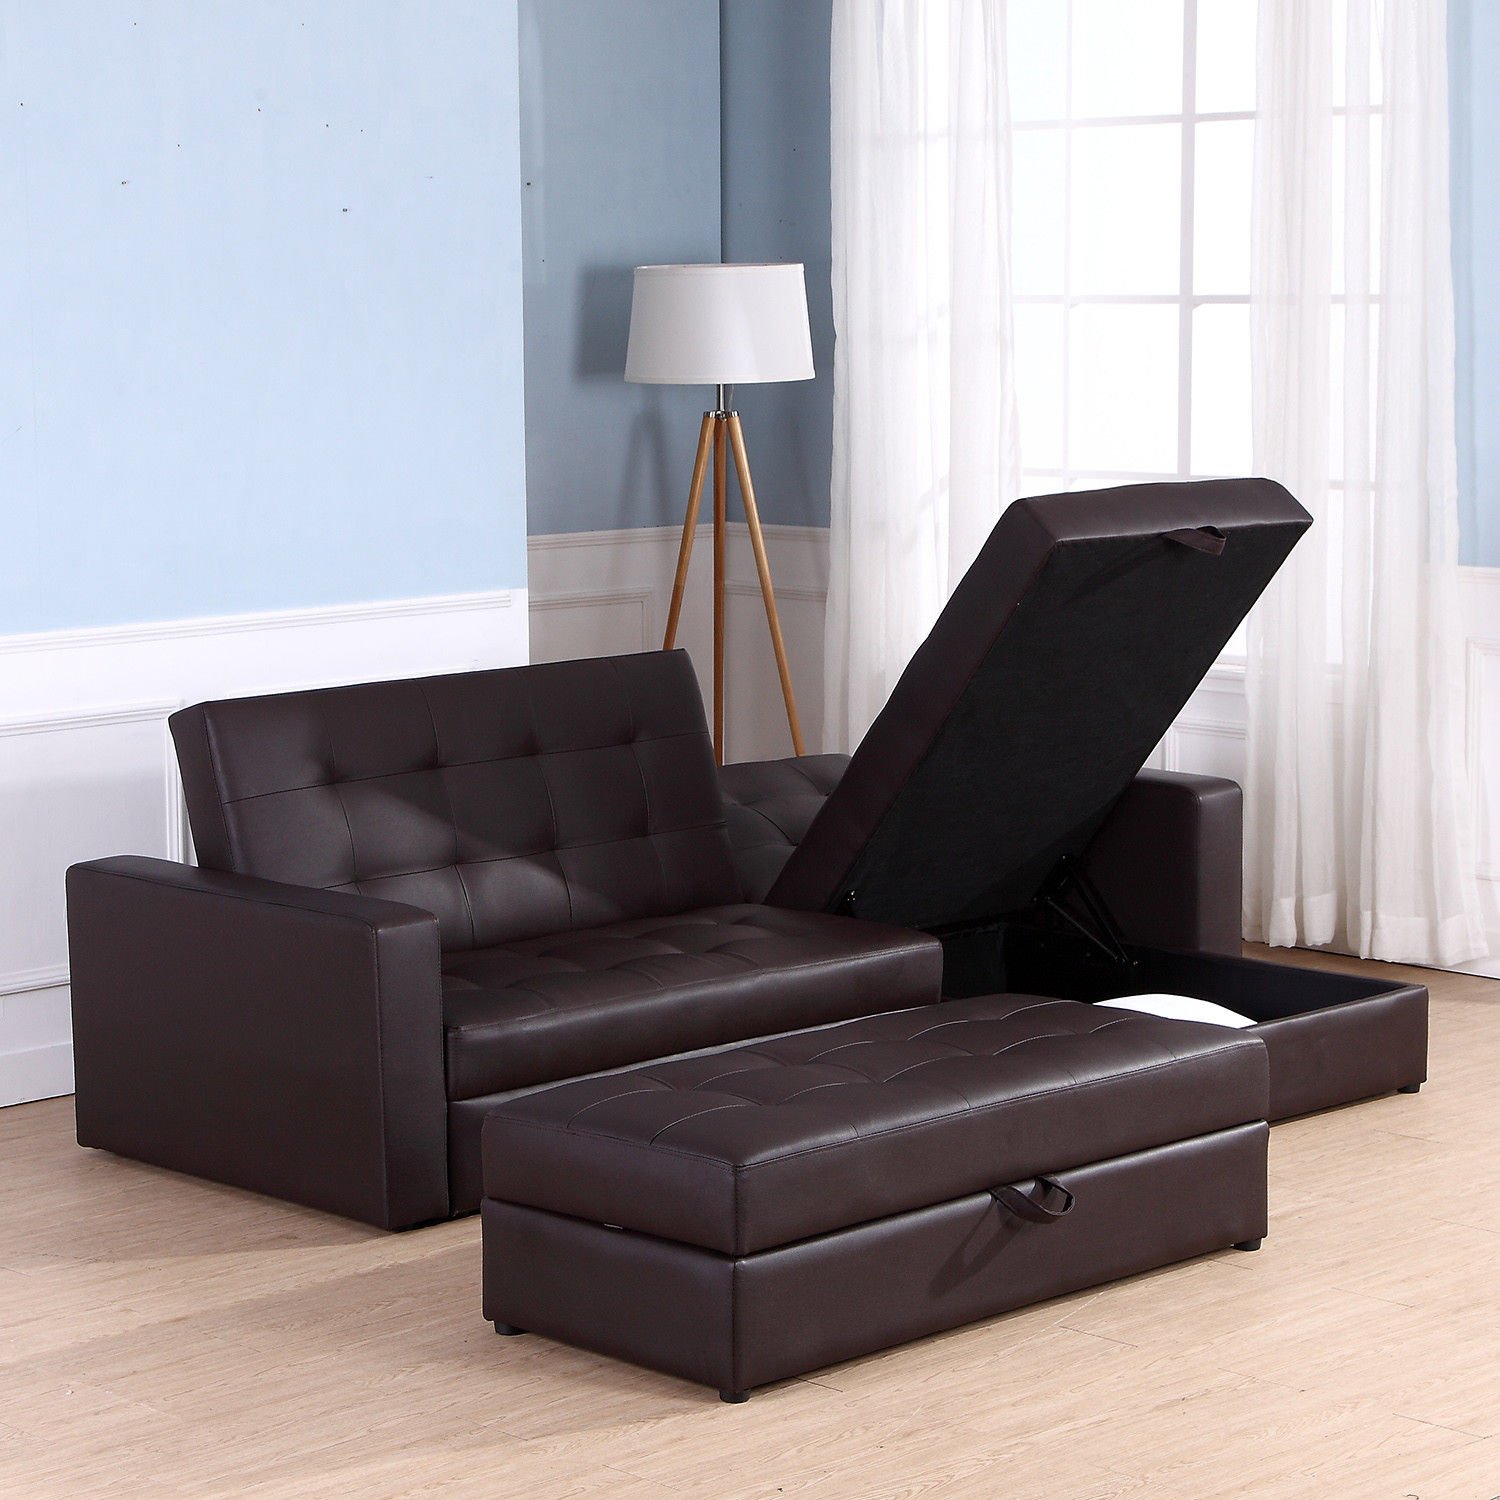 Sofa Bed Storage Sleeper Chaise Loveseat Couch Sectional - Living Room Sofa Bed